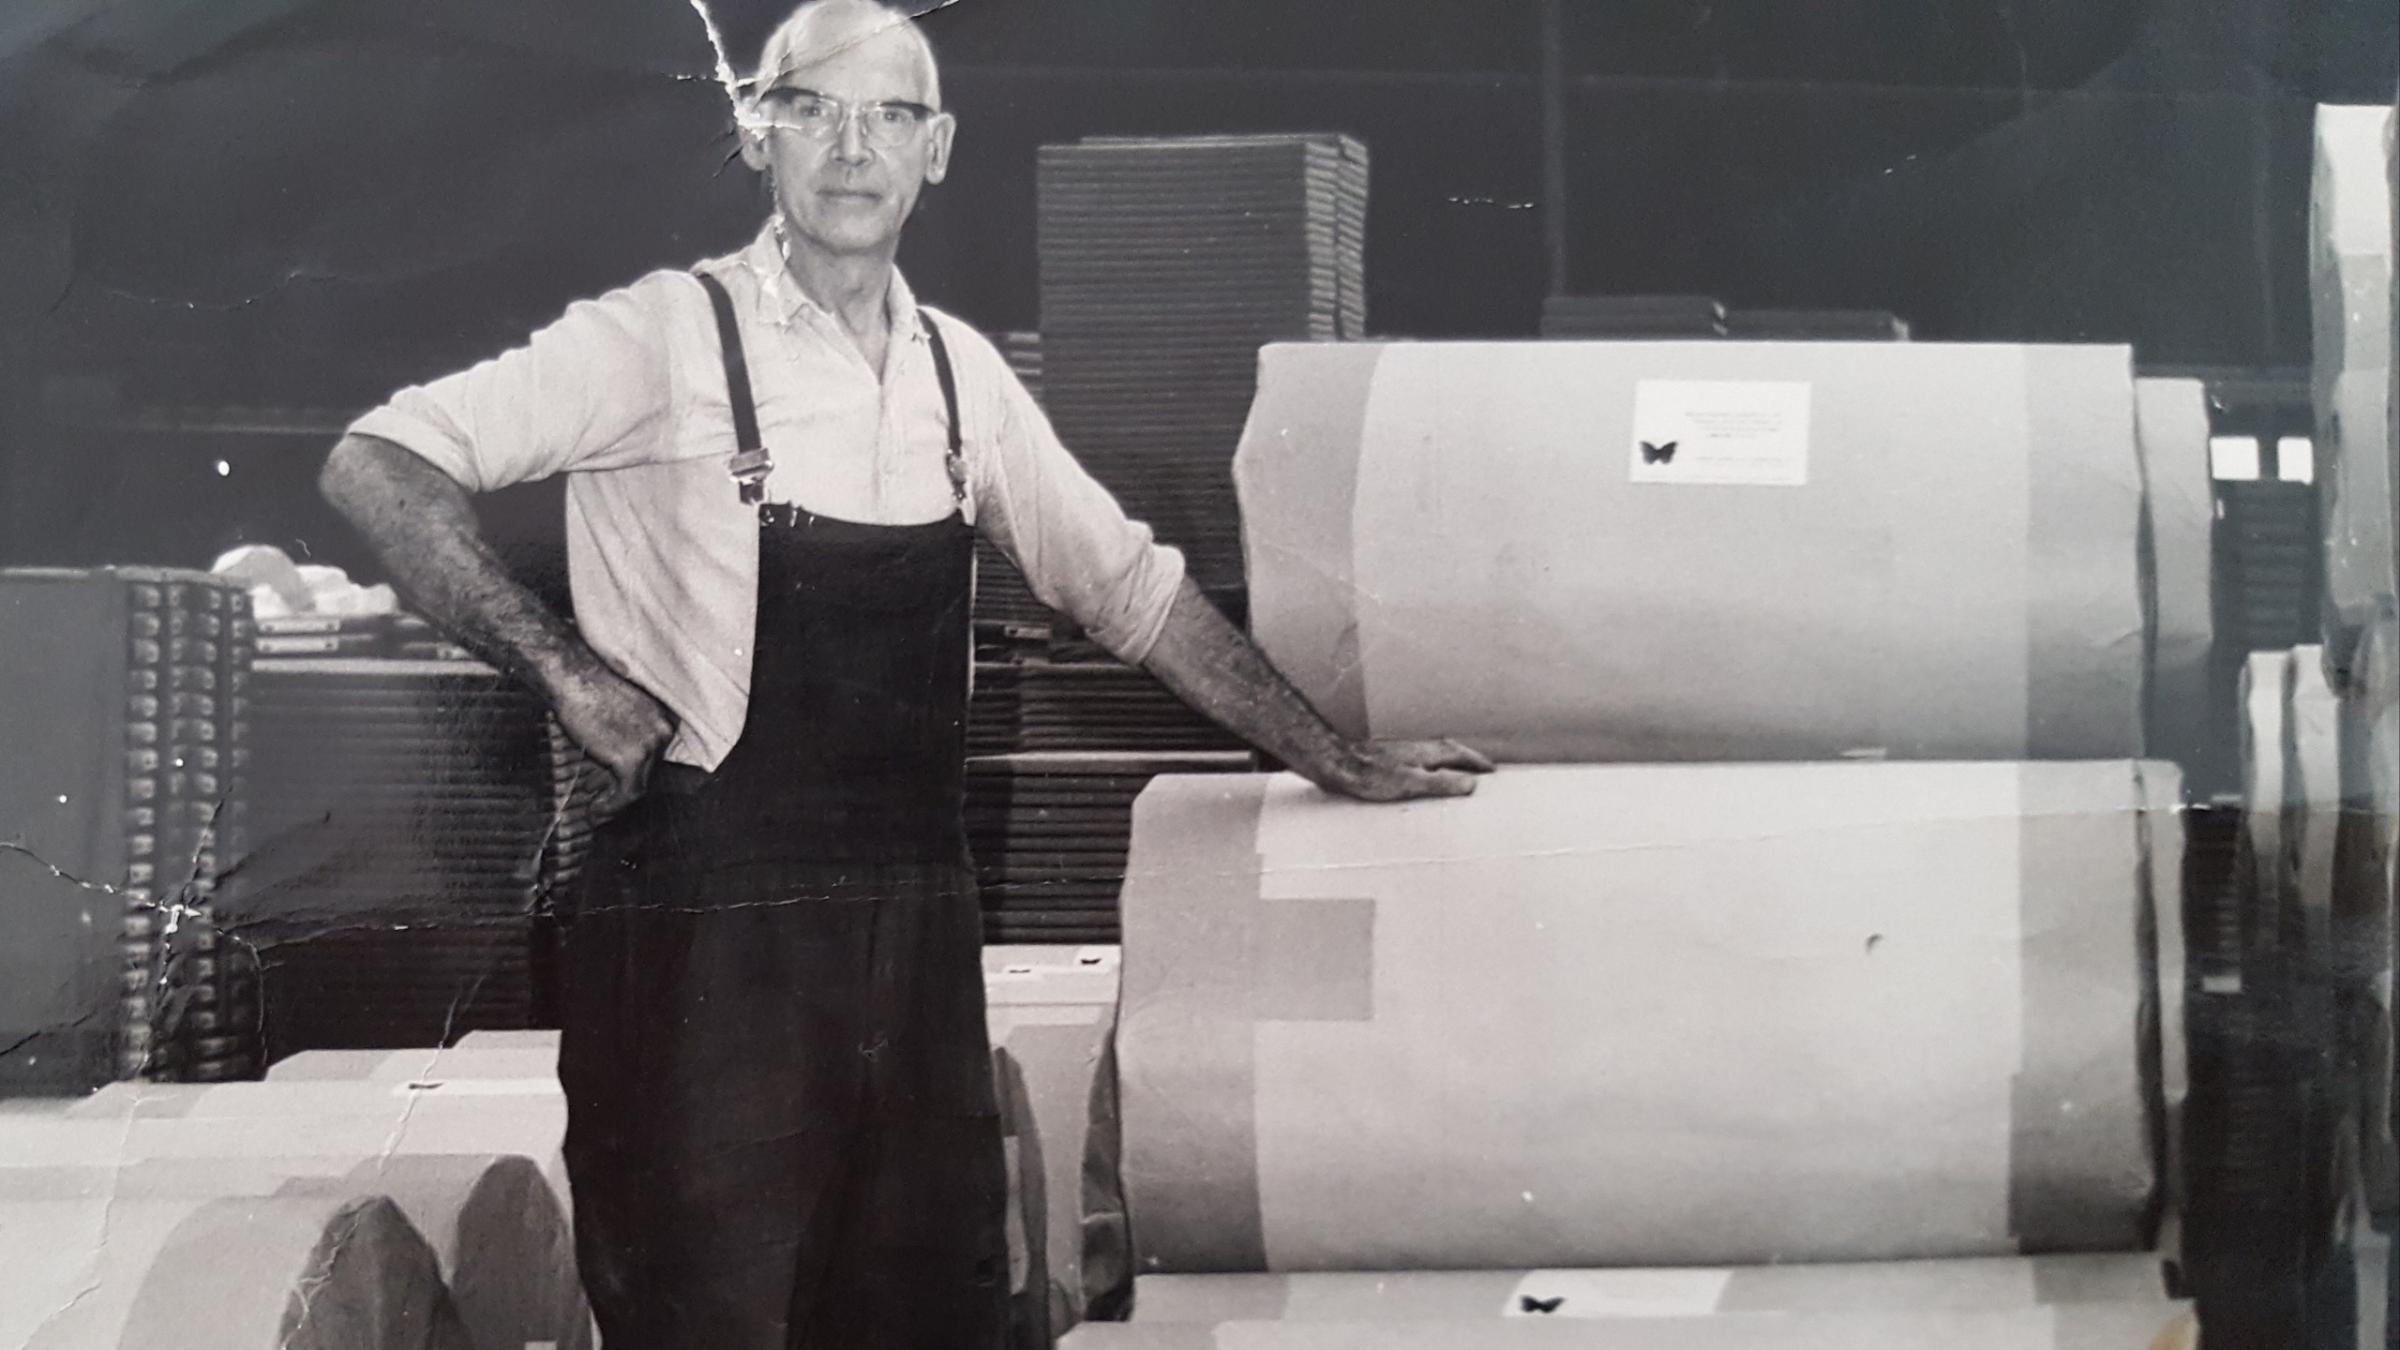 WORK PRIDE: Mill employee David Forsyth with the rolls of paper featuring the butterfly logo. The image is thought to have been takein in the 1960s.